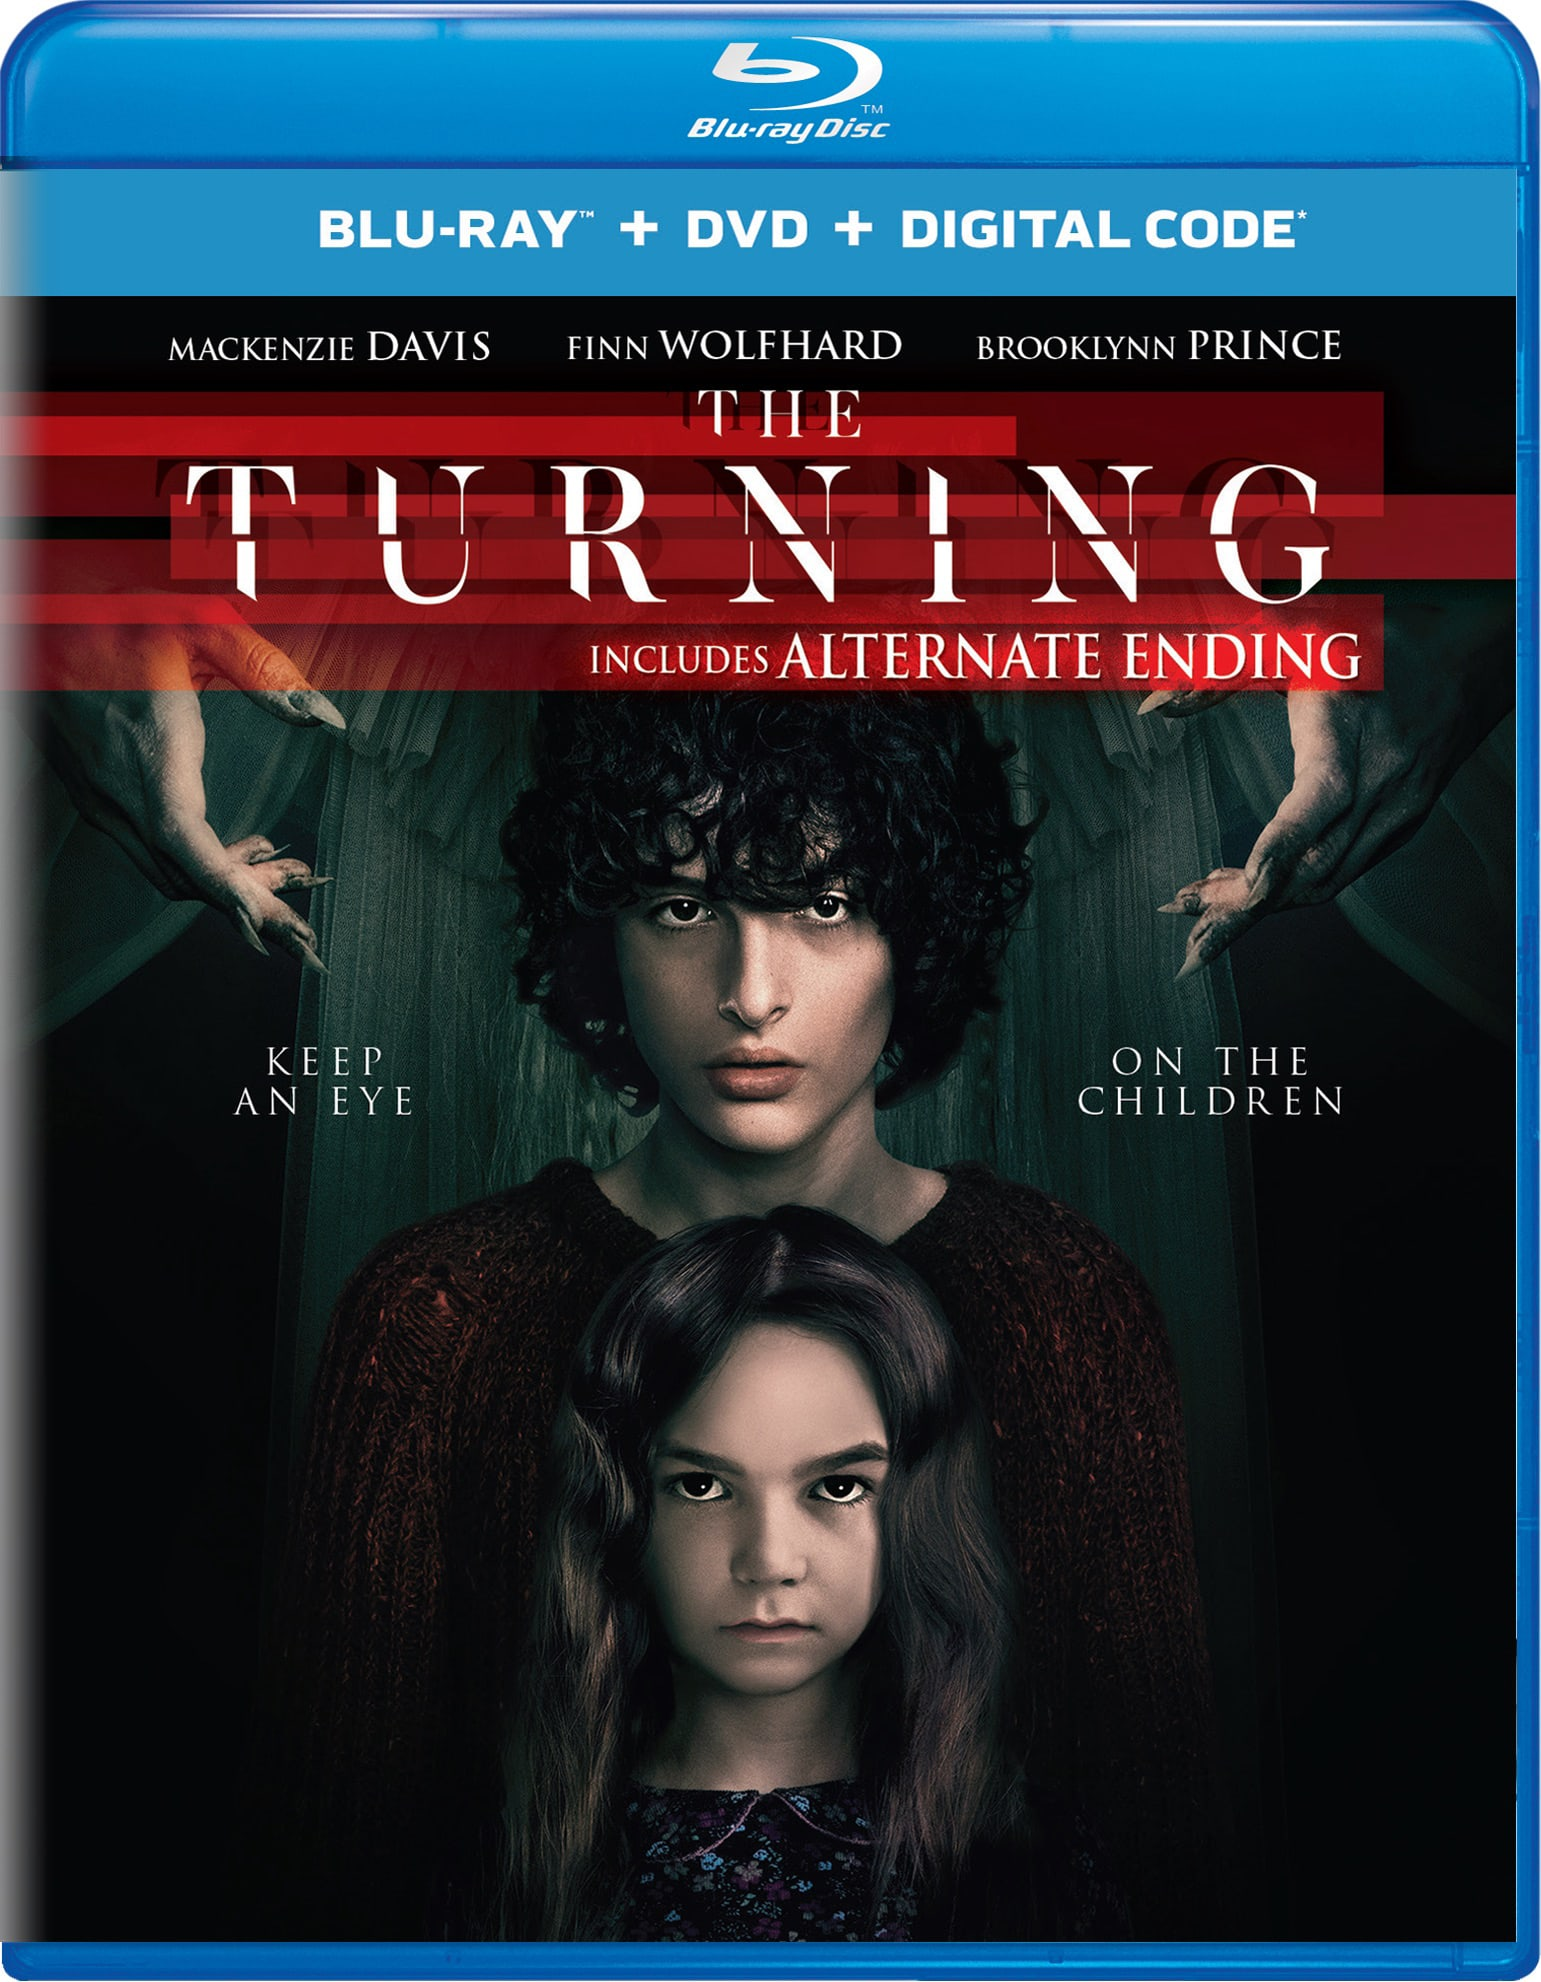 The Turning (DVD + Digital) [Blu-ray]